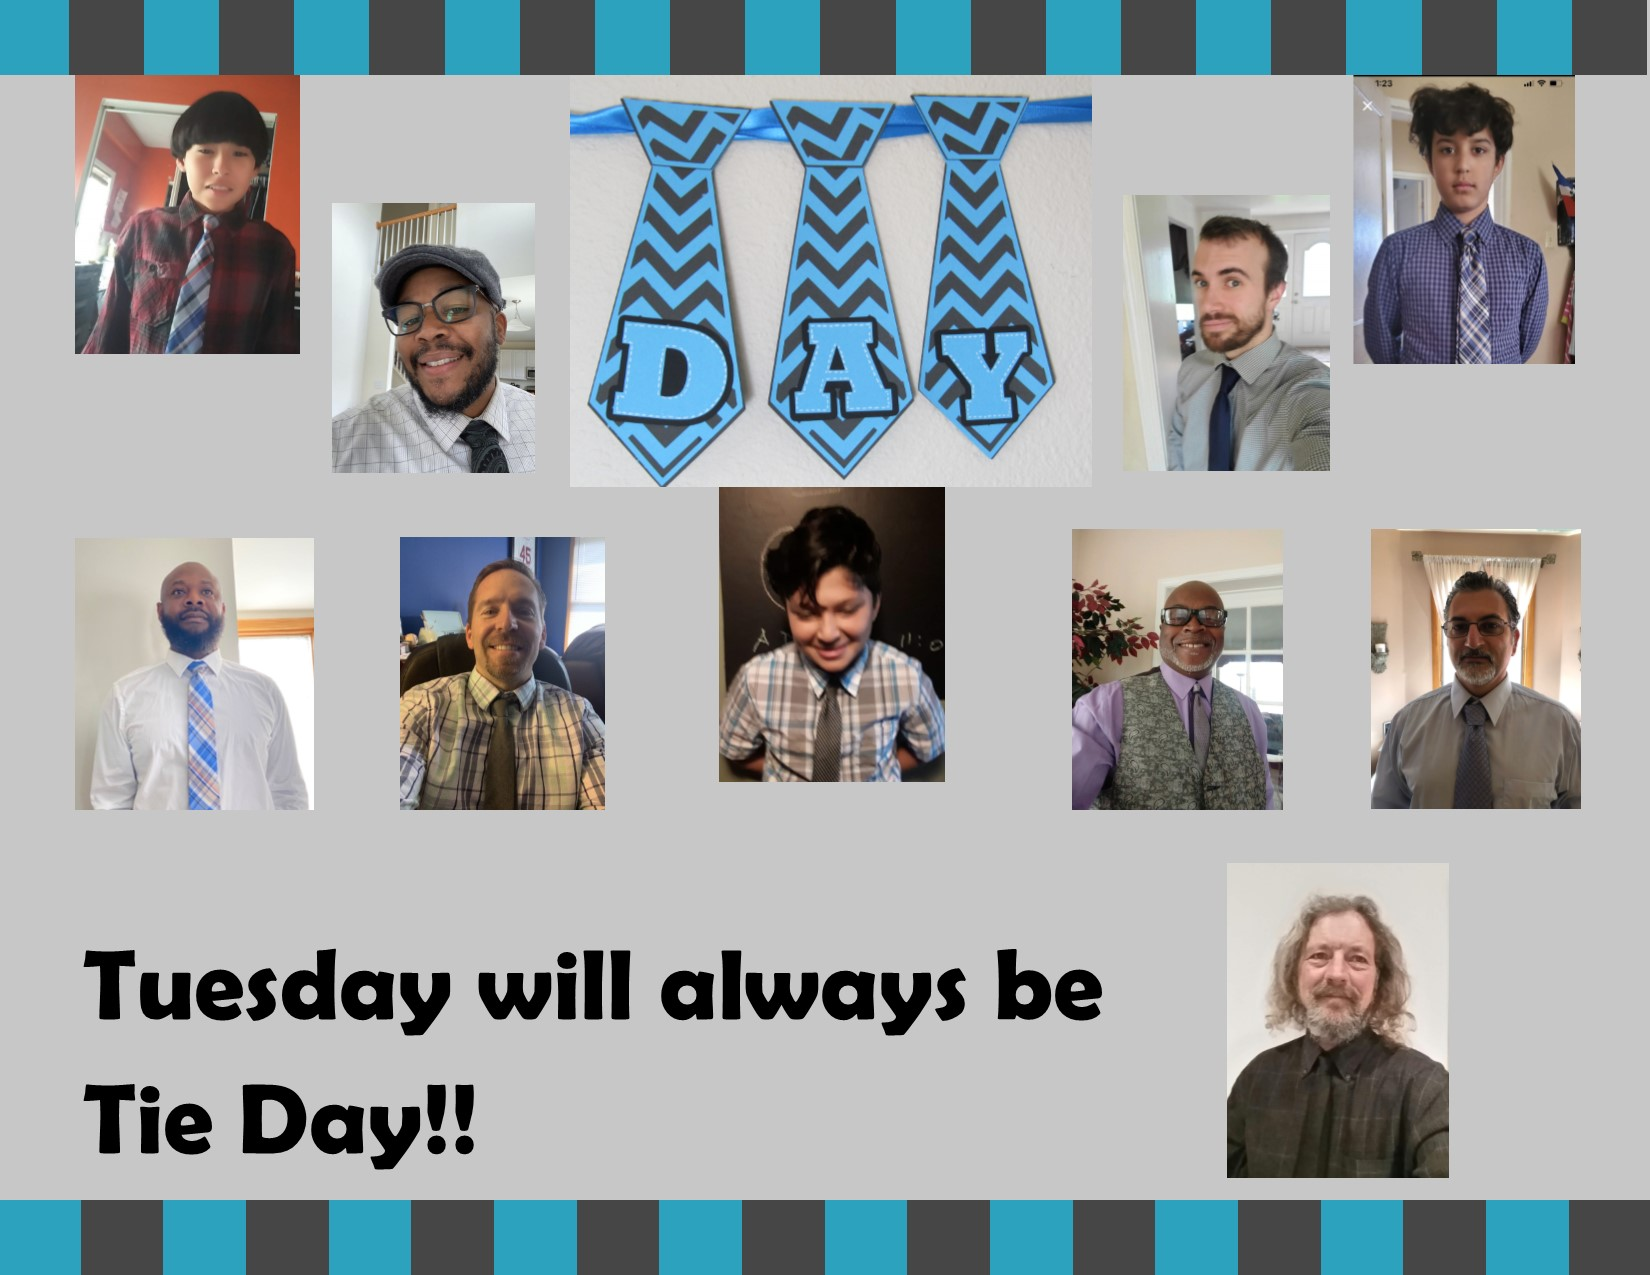 Tuesday will always be Tie Day image